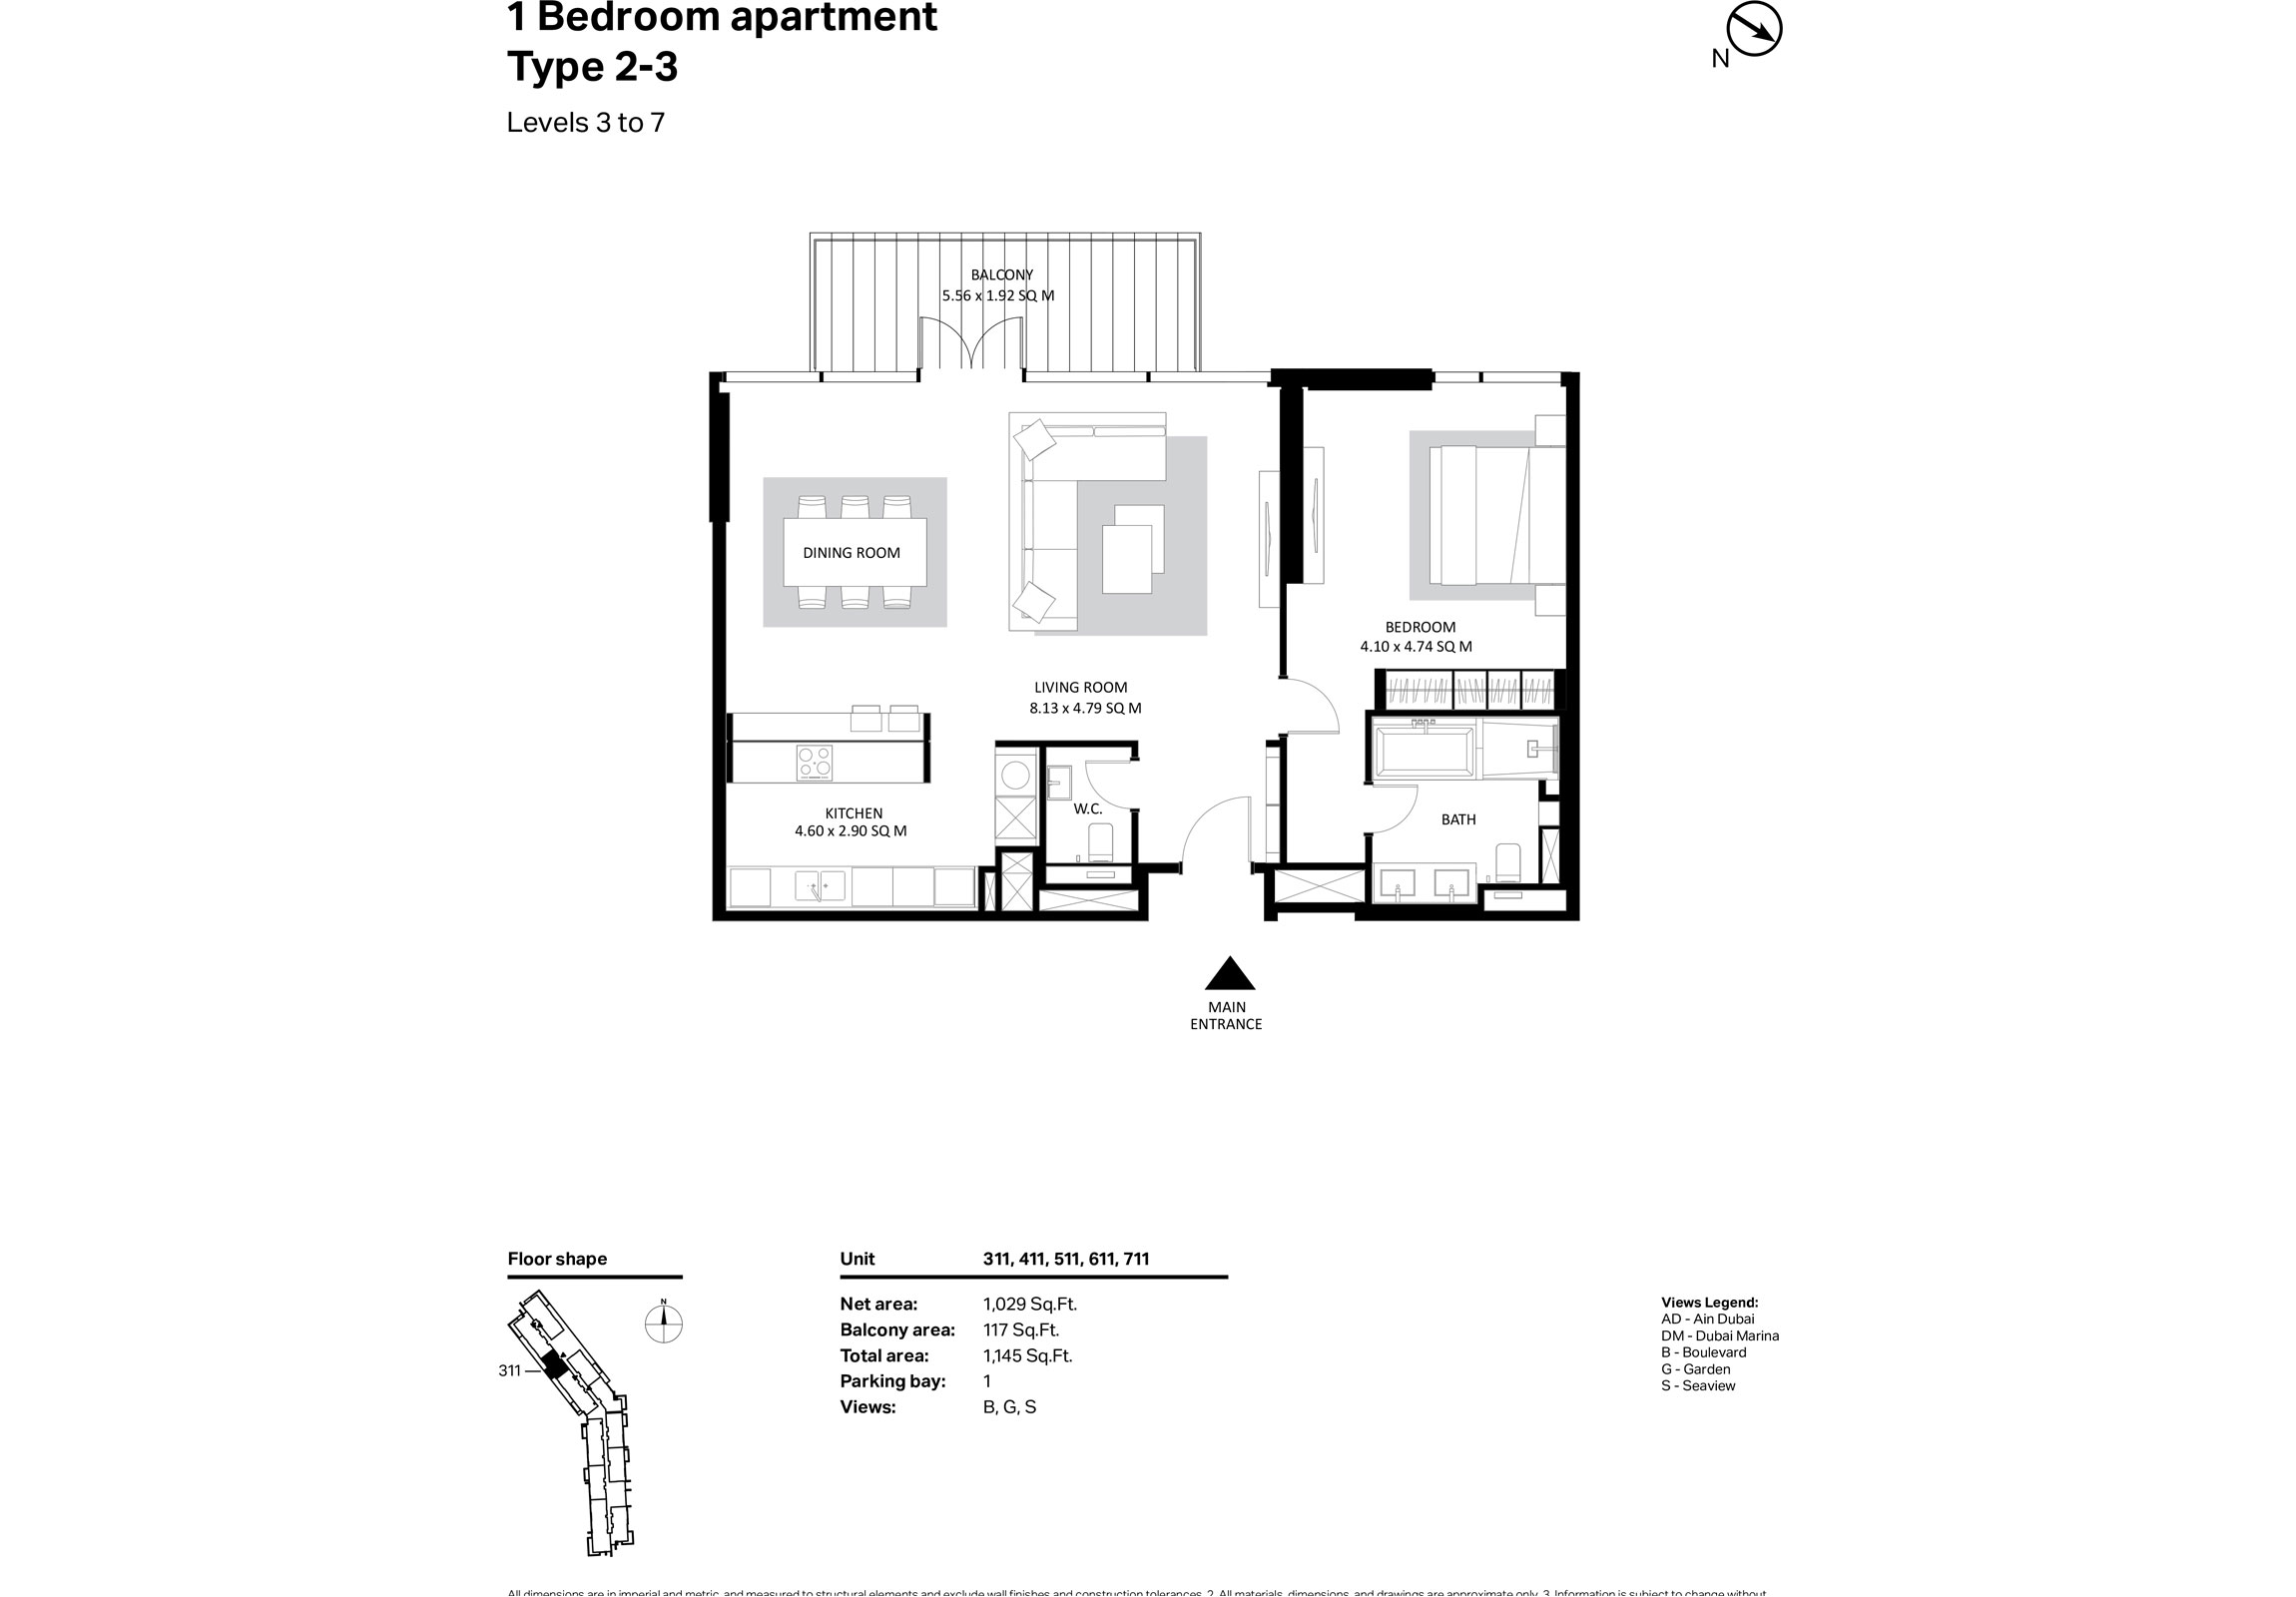 Building 2 - 1 Bedroom Type 2-3 Level 3-7 Size 1145    sq. ft.